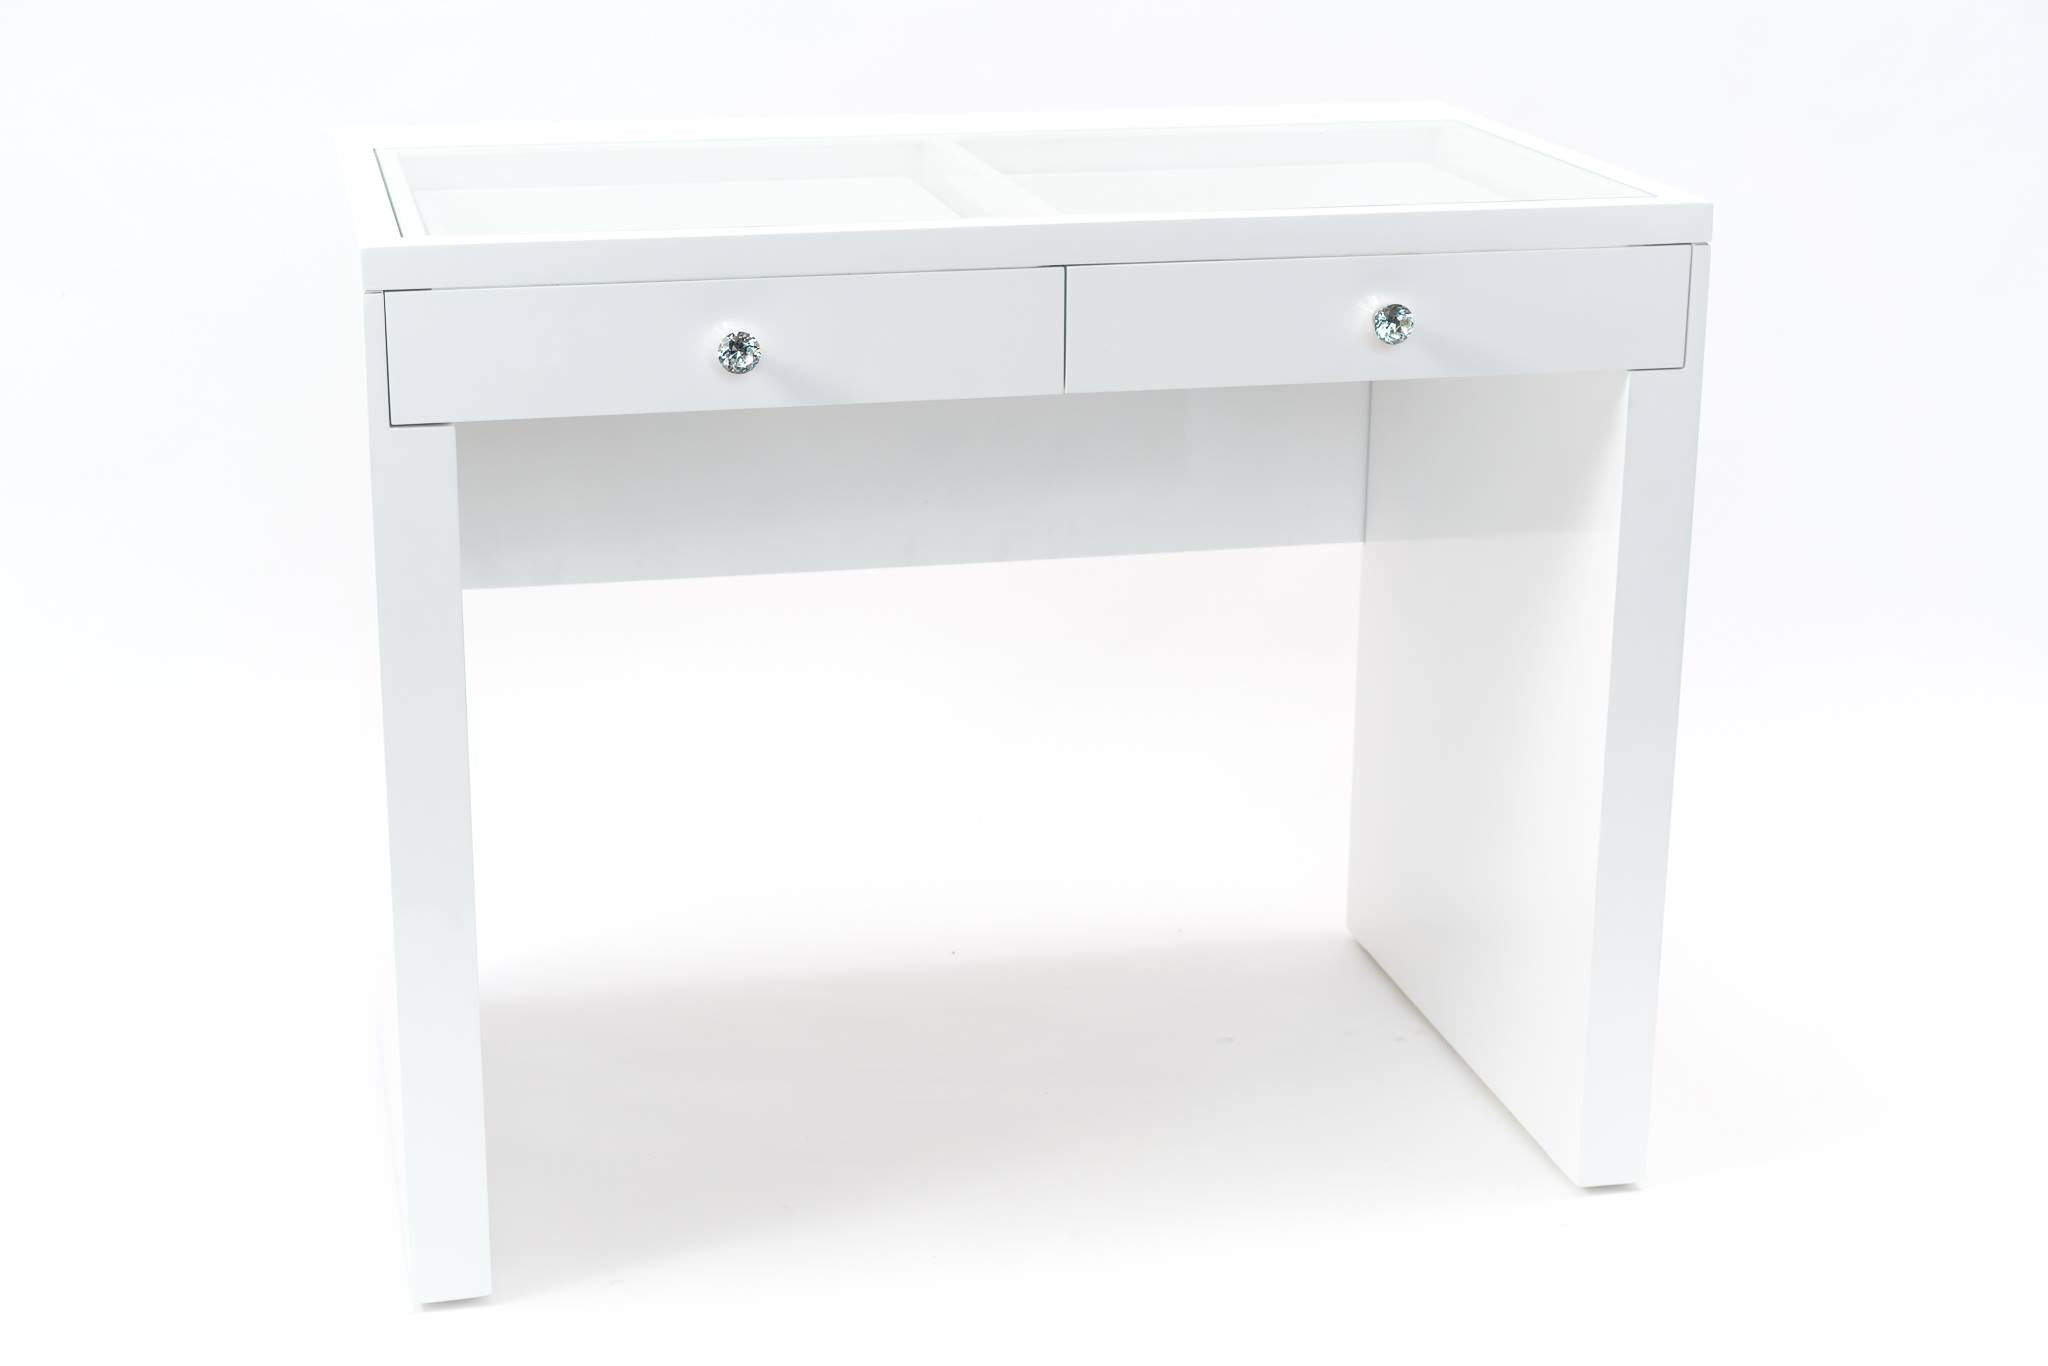 Vanity Station 2 pieces - White Vanity With 2 Drawers with White Bluetooth Hollywood Mirror- STOOL NOT INCLUDED-PRE ORDER FOR MARCH SHIPPING